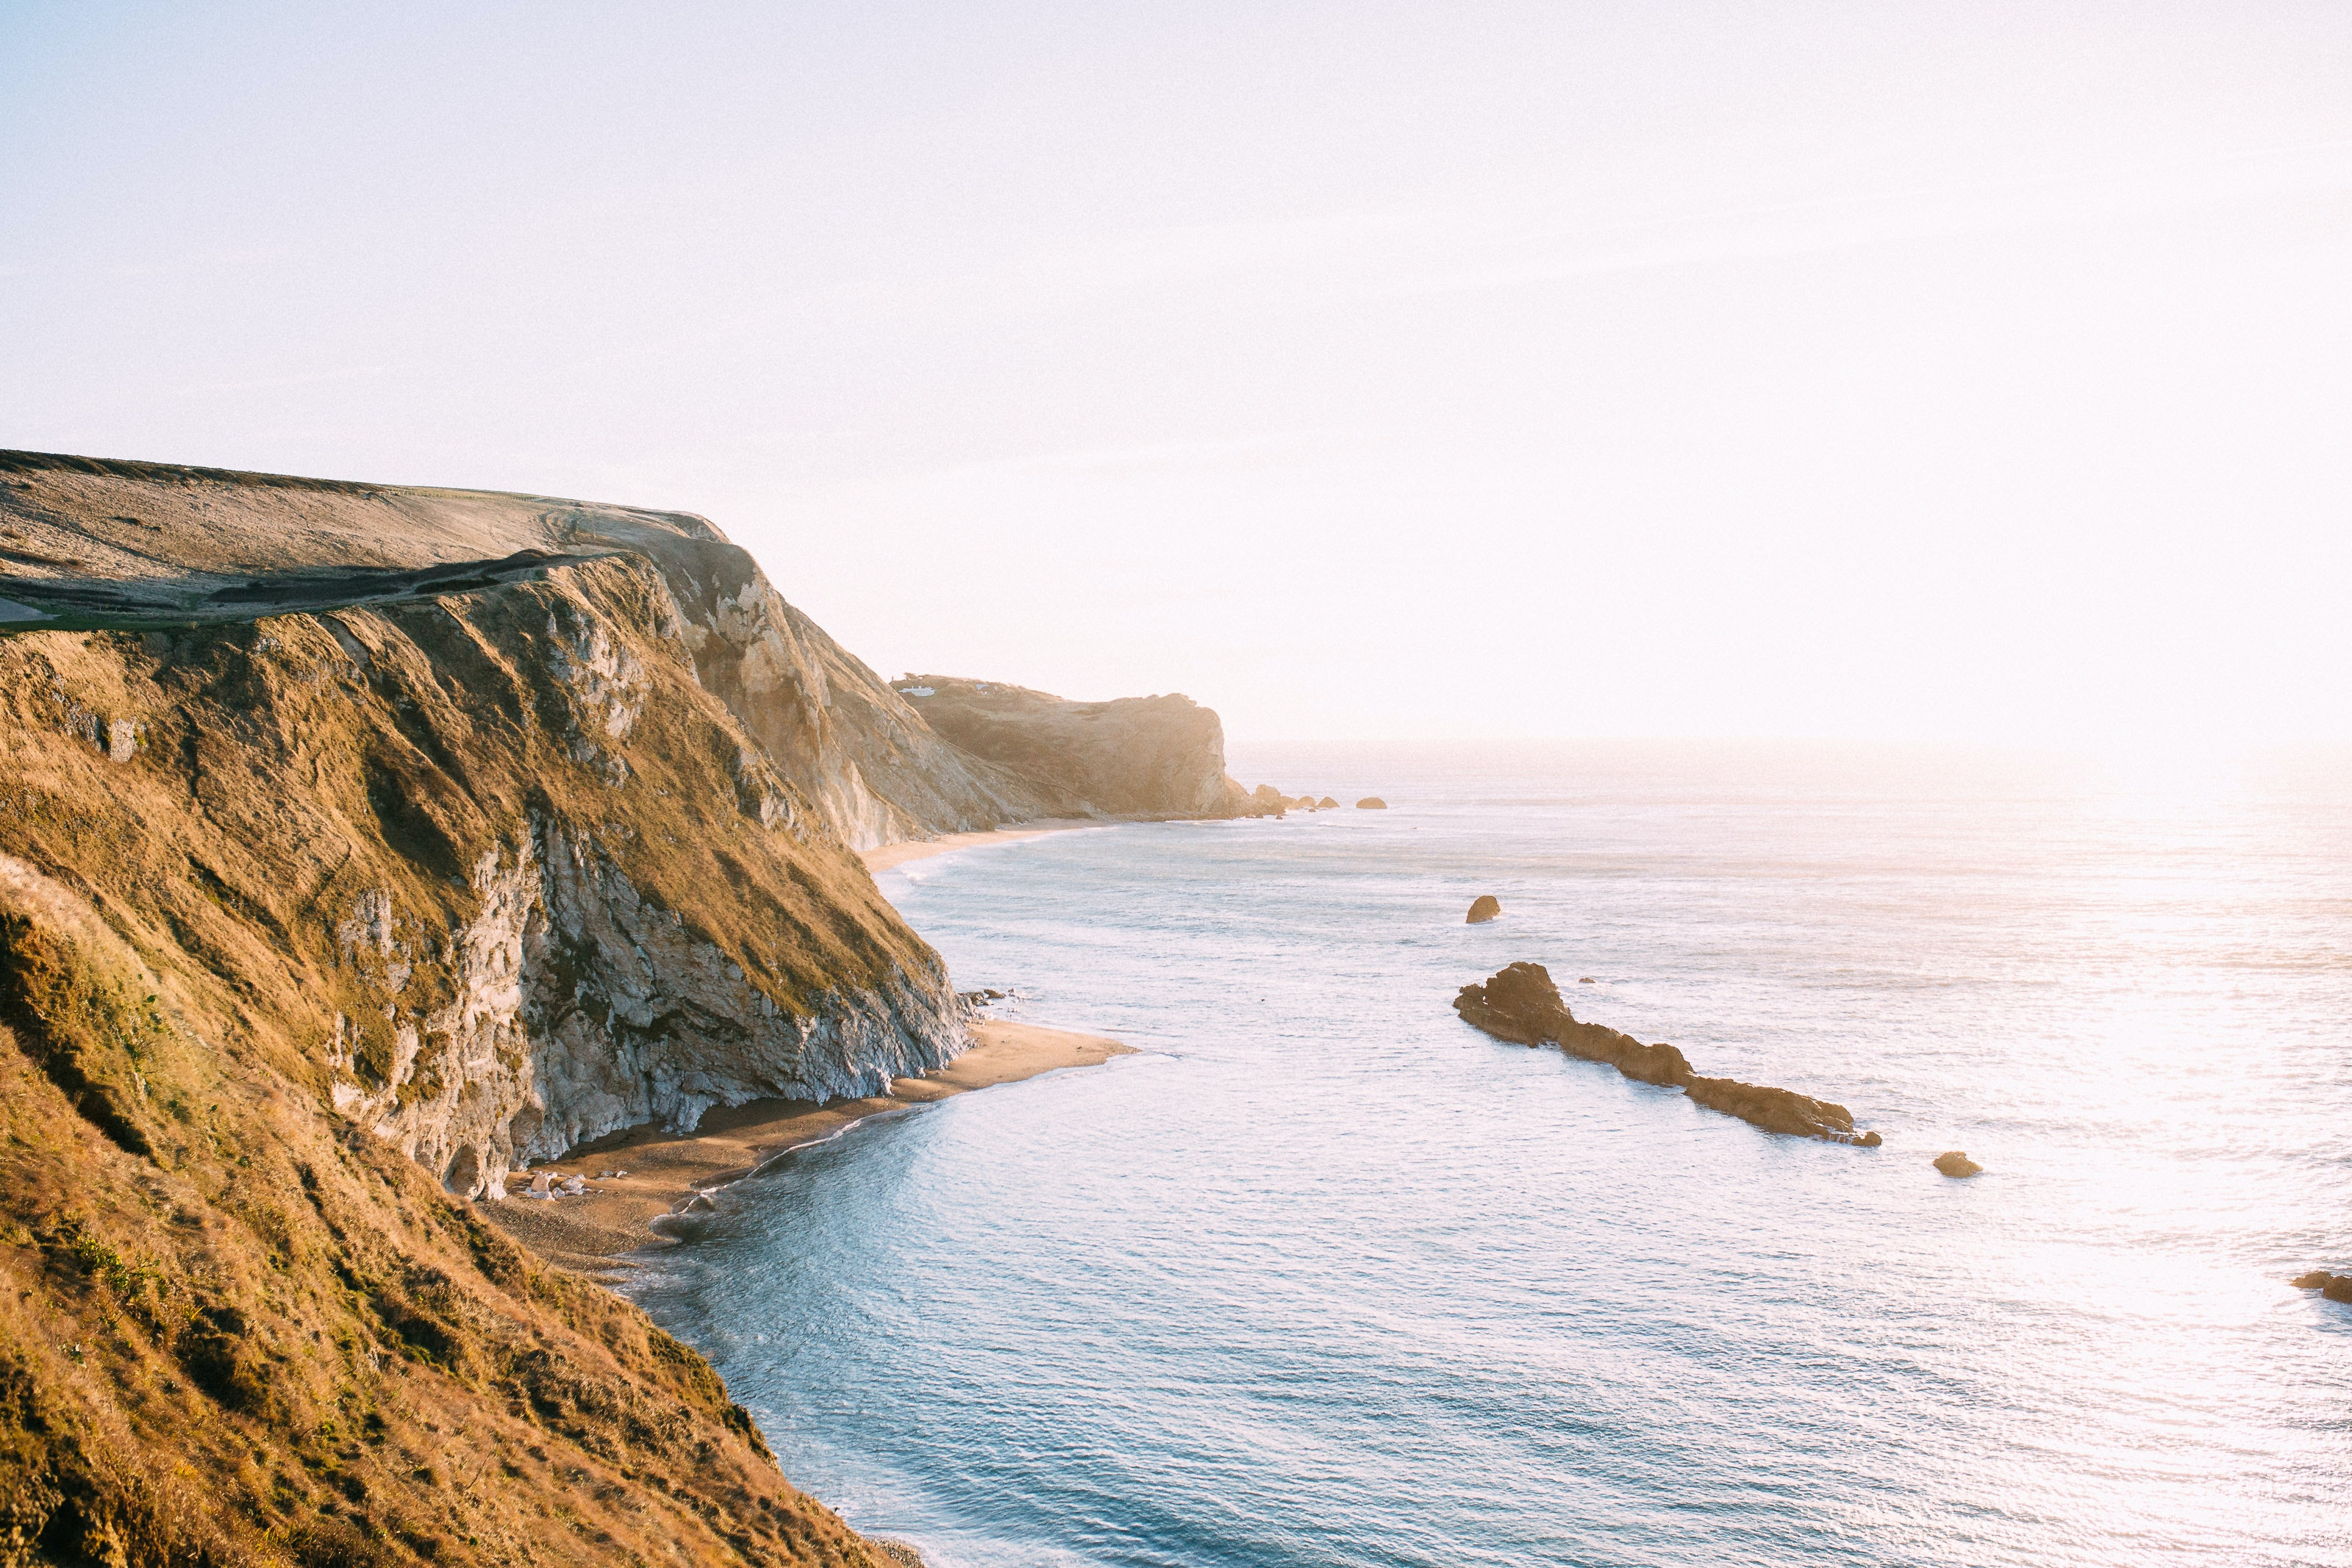 Cliffs Ocean Passion and Purpose